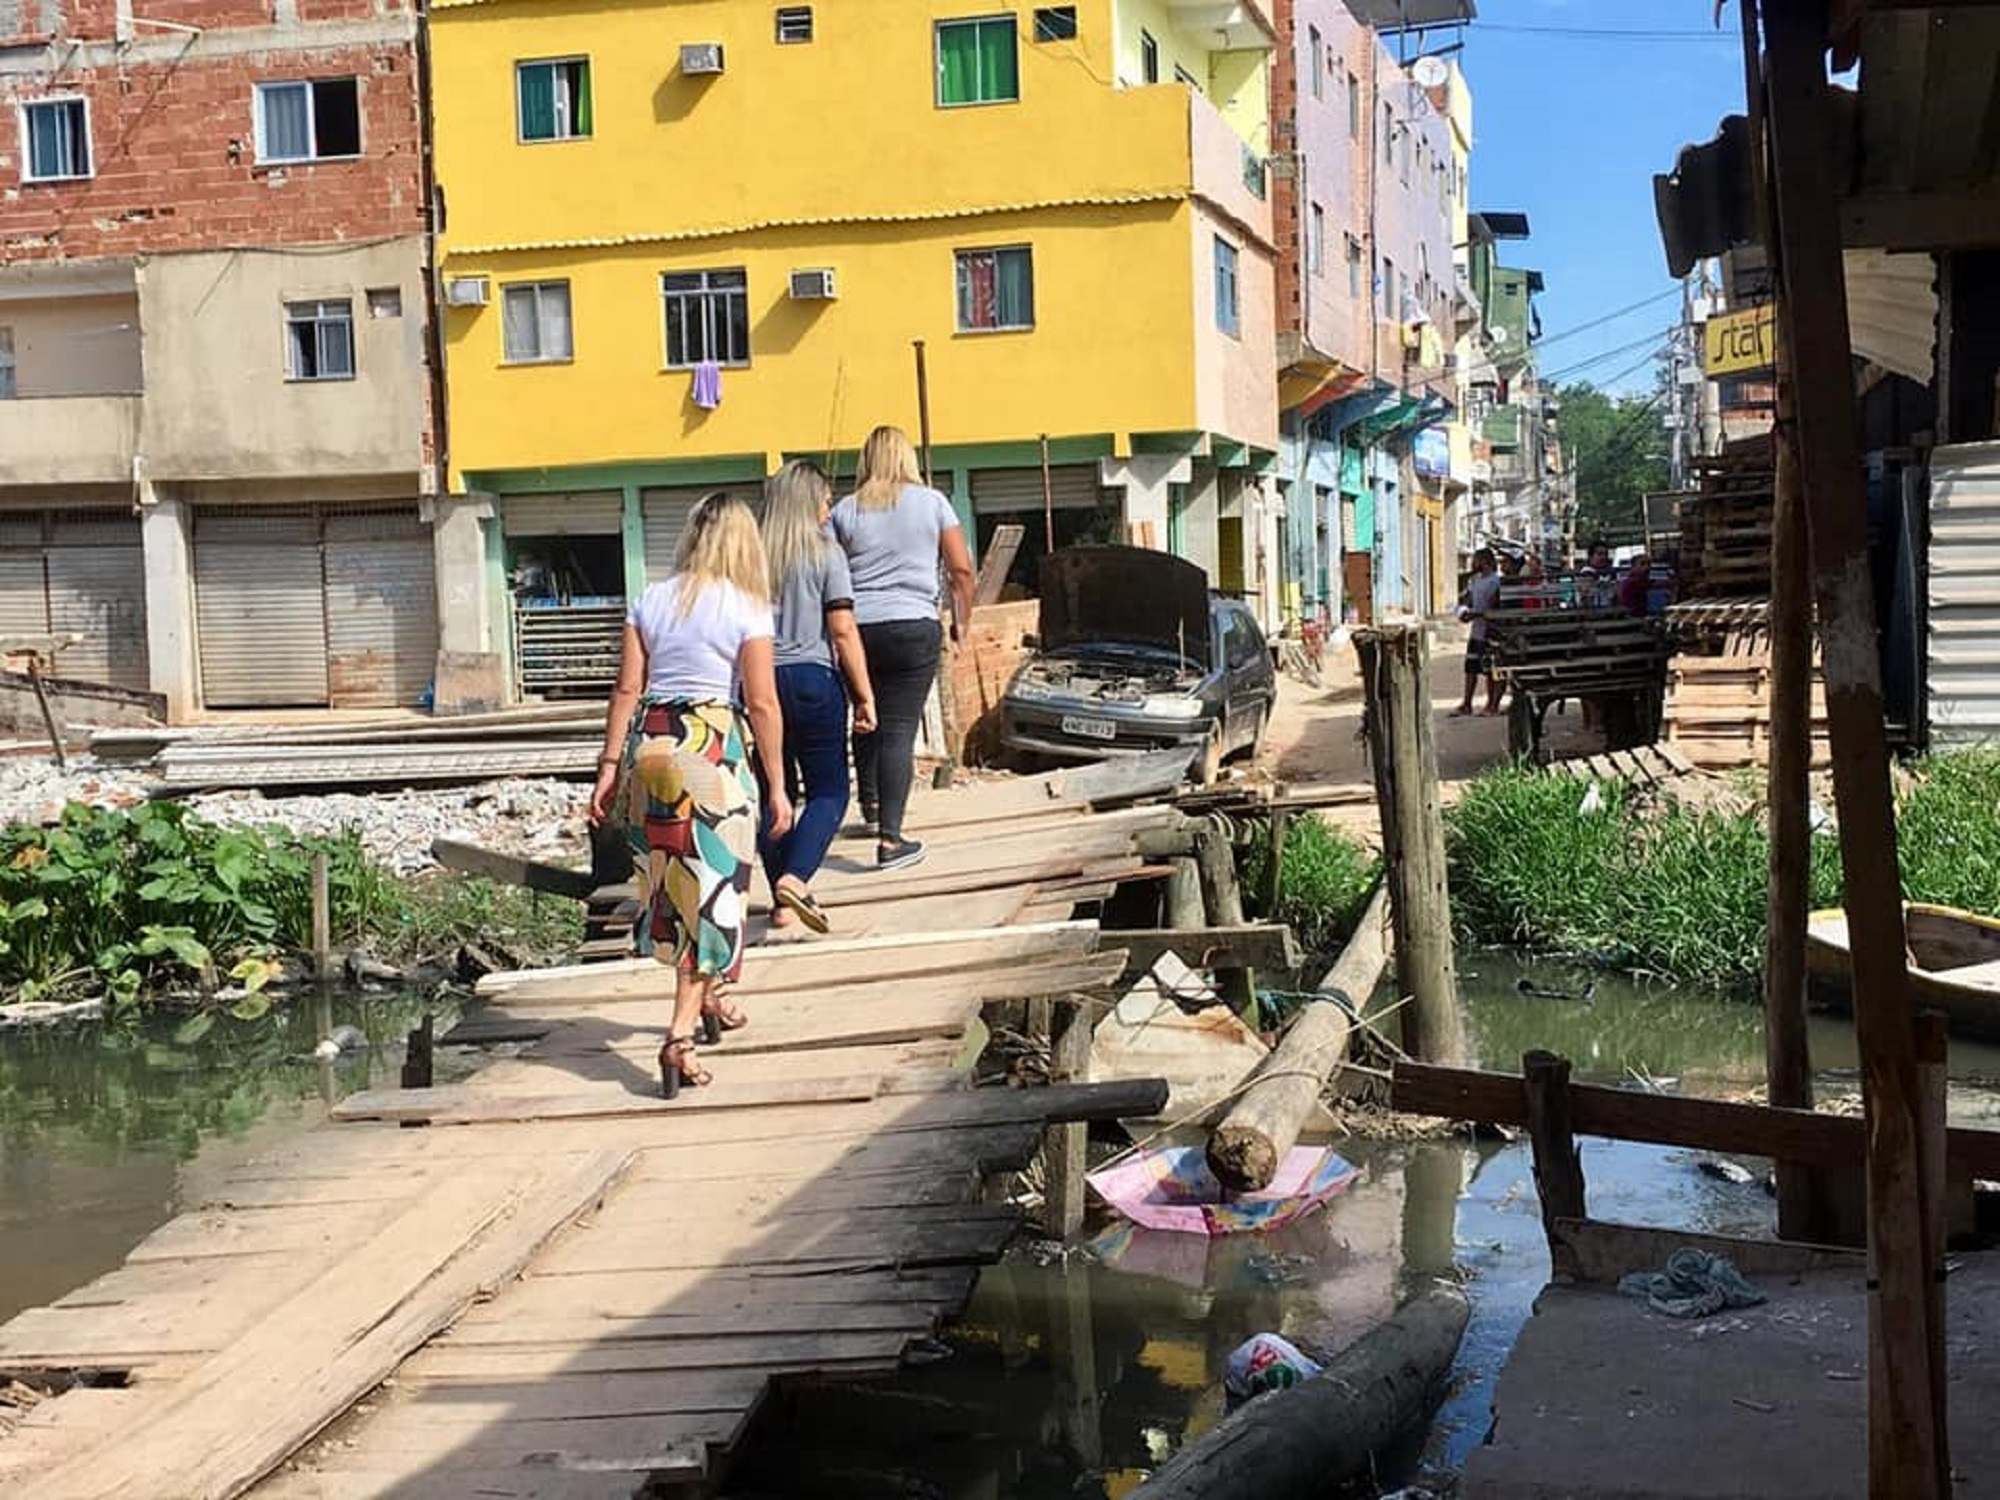 Still Threatened With Eviction, Rio das Pedras Shifts Focus